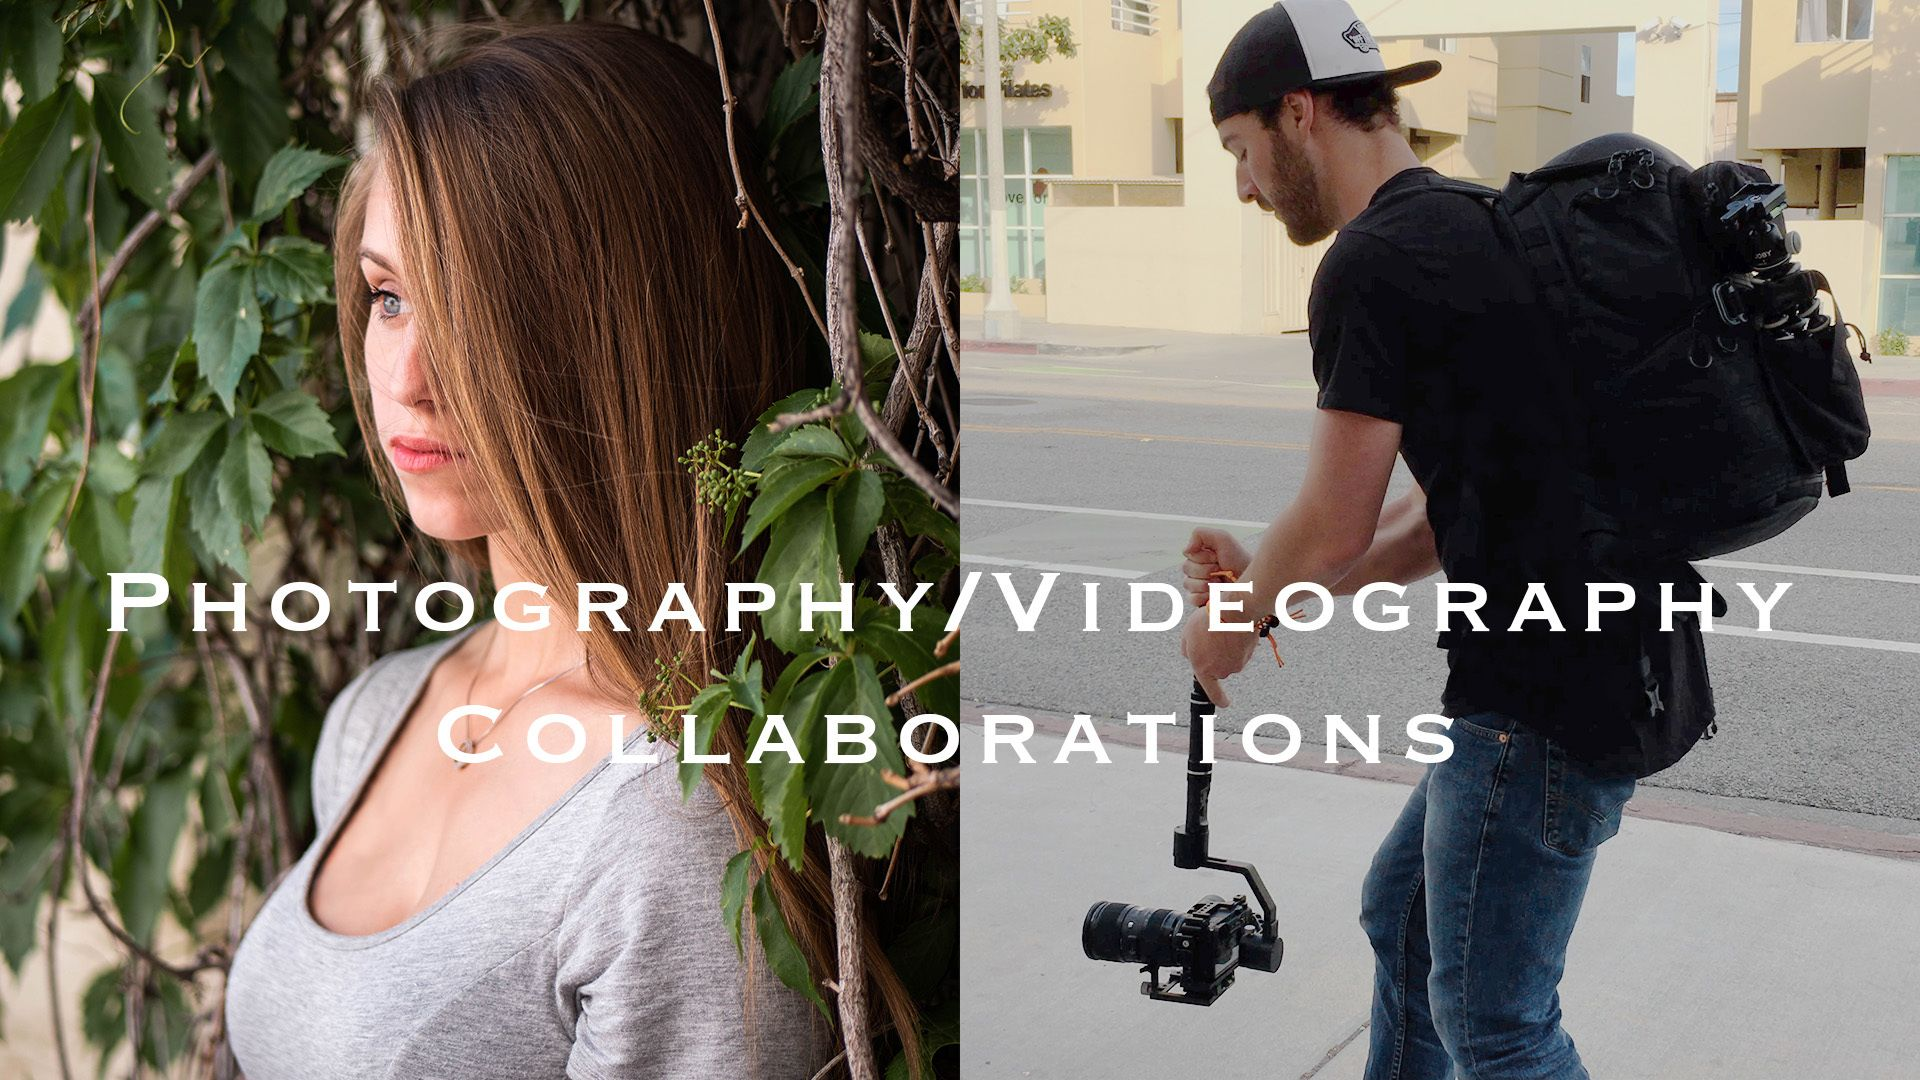 Photography/Videography Collaborative Group